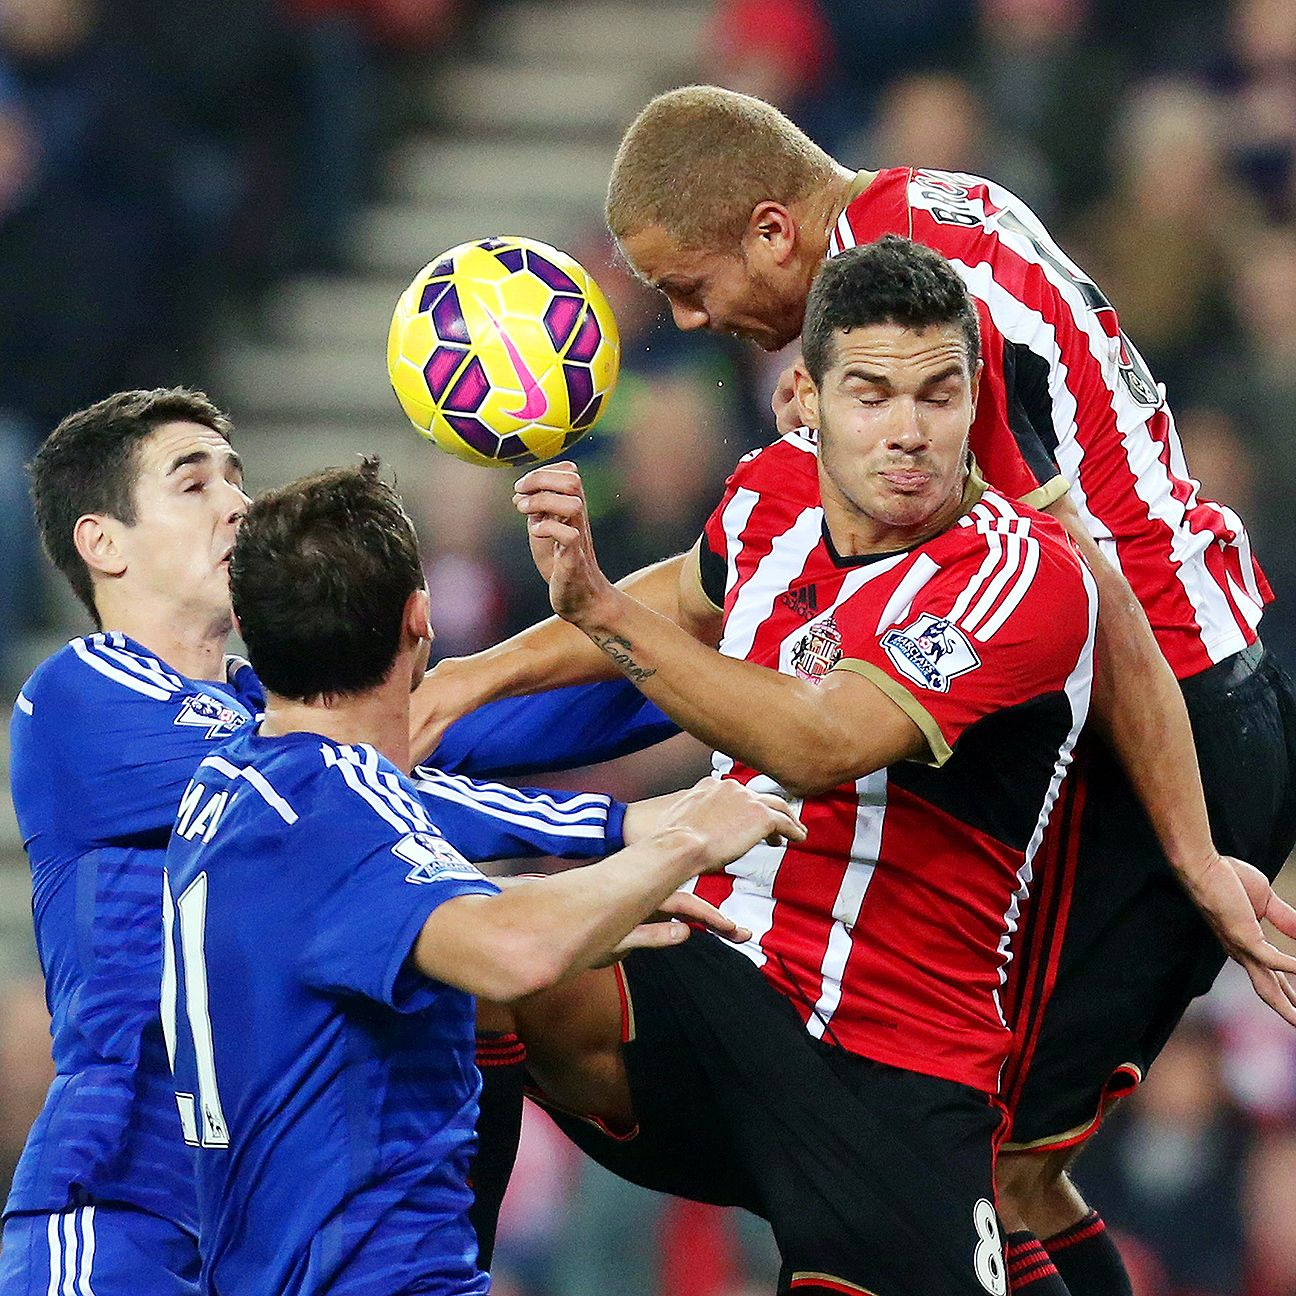 Sunderland's defenders refused to yield an inch to Chelsea's attackers.